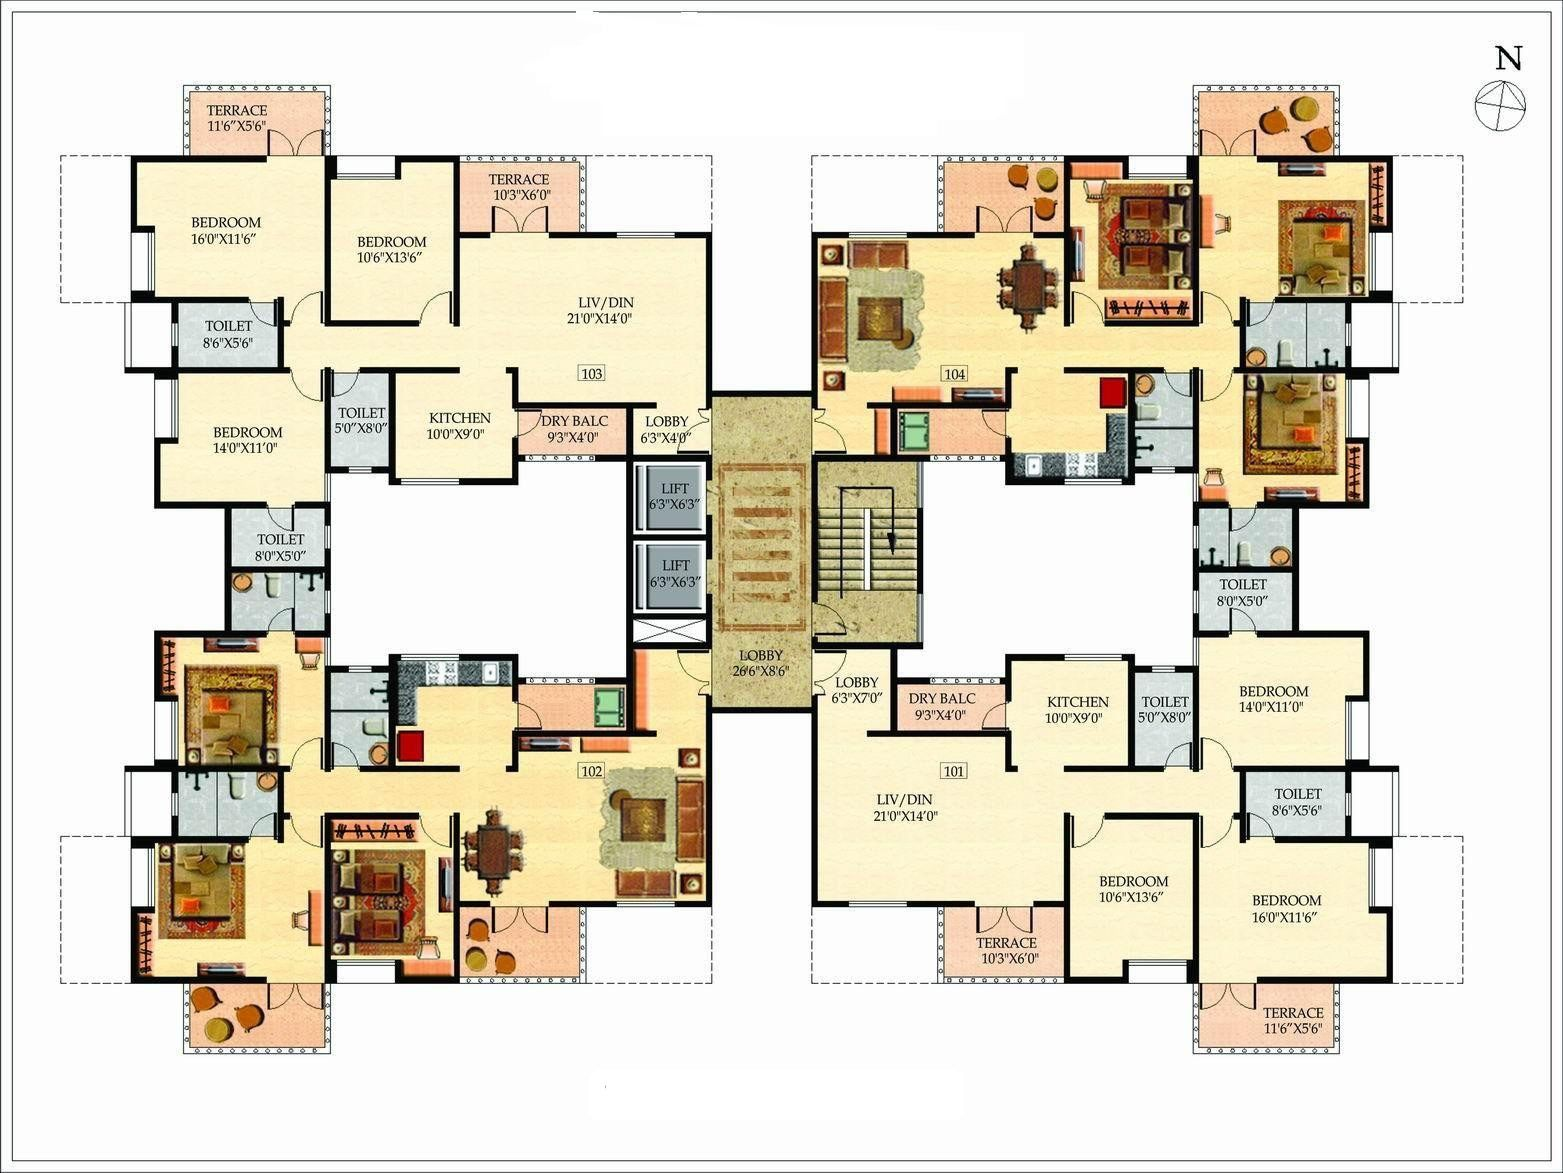 6 Bedroom Mansion Floor Plans Design Ideas 2017 2018 Pinterest Mansion Bedrooms And